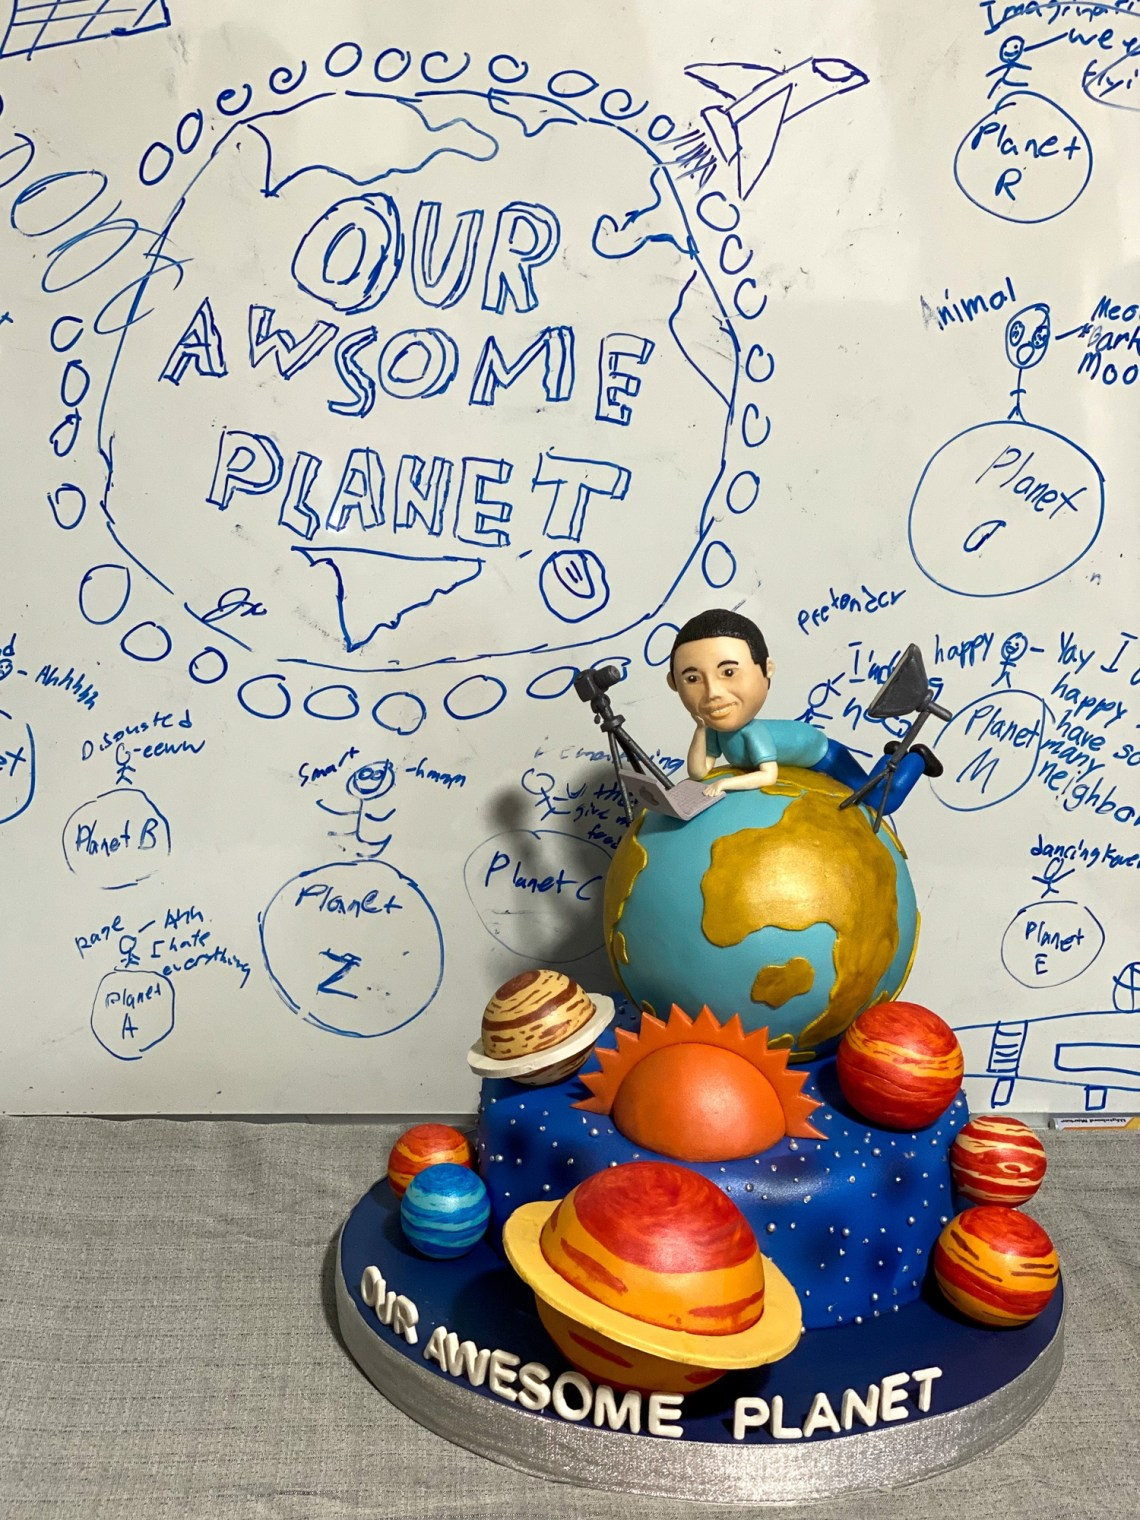 Our Awesome Planet Customized Cake made with Banana Chocolate Cake and lots of planets